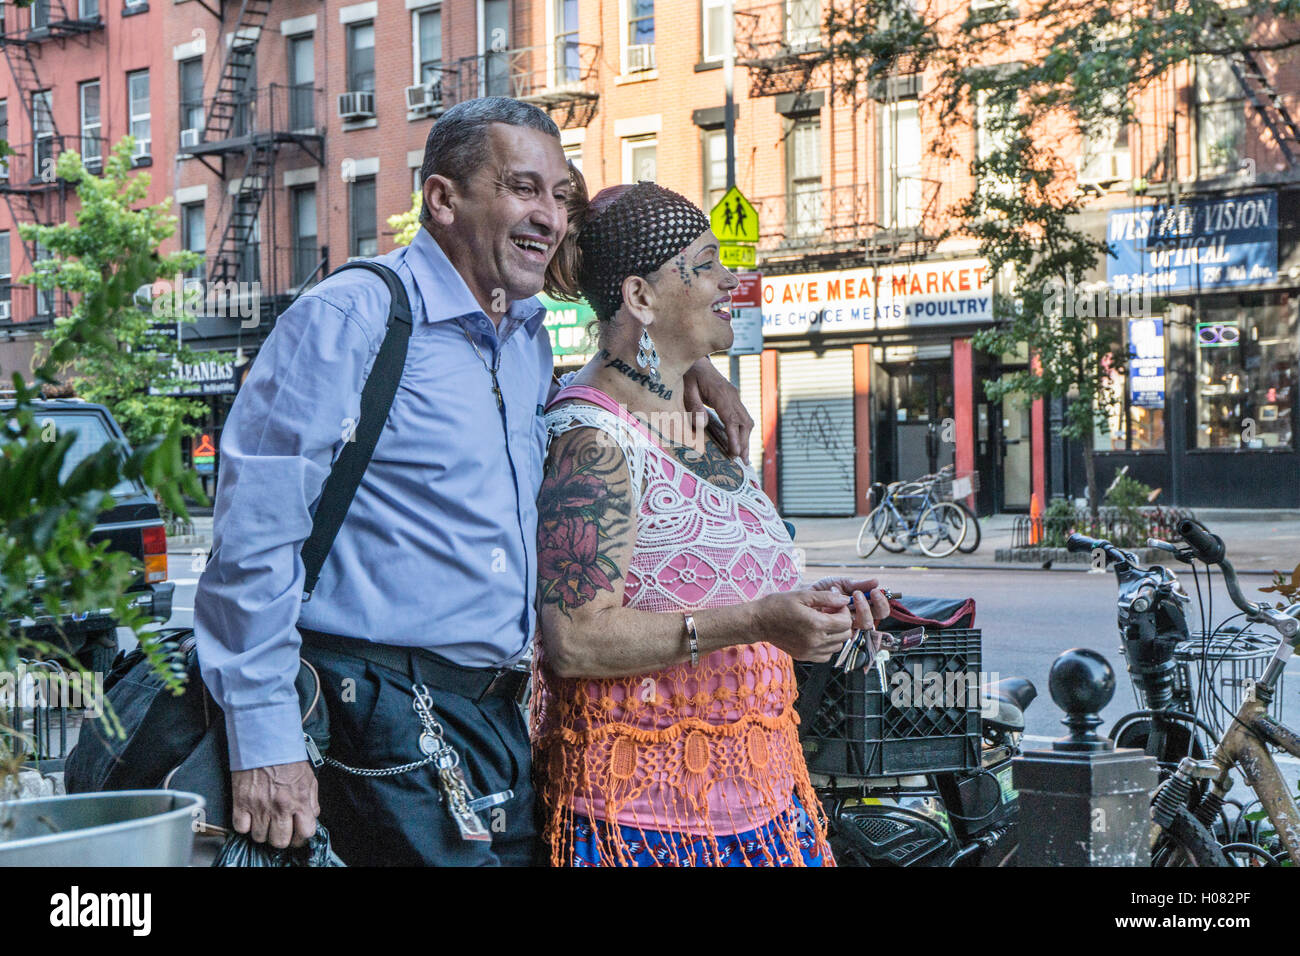 happy older couple promenade on 10th Avenue she garlanded with fantastic tattoos & colorful garb he with arm - Stock Image